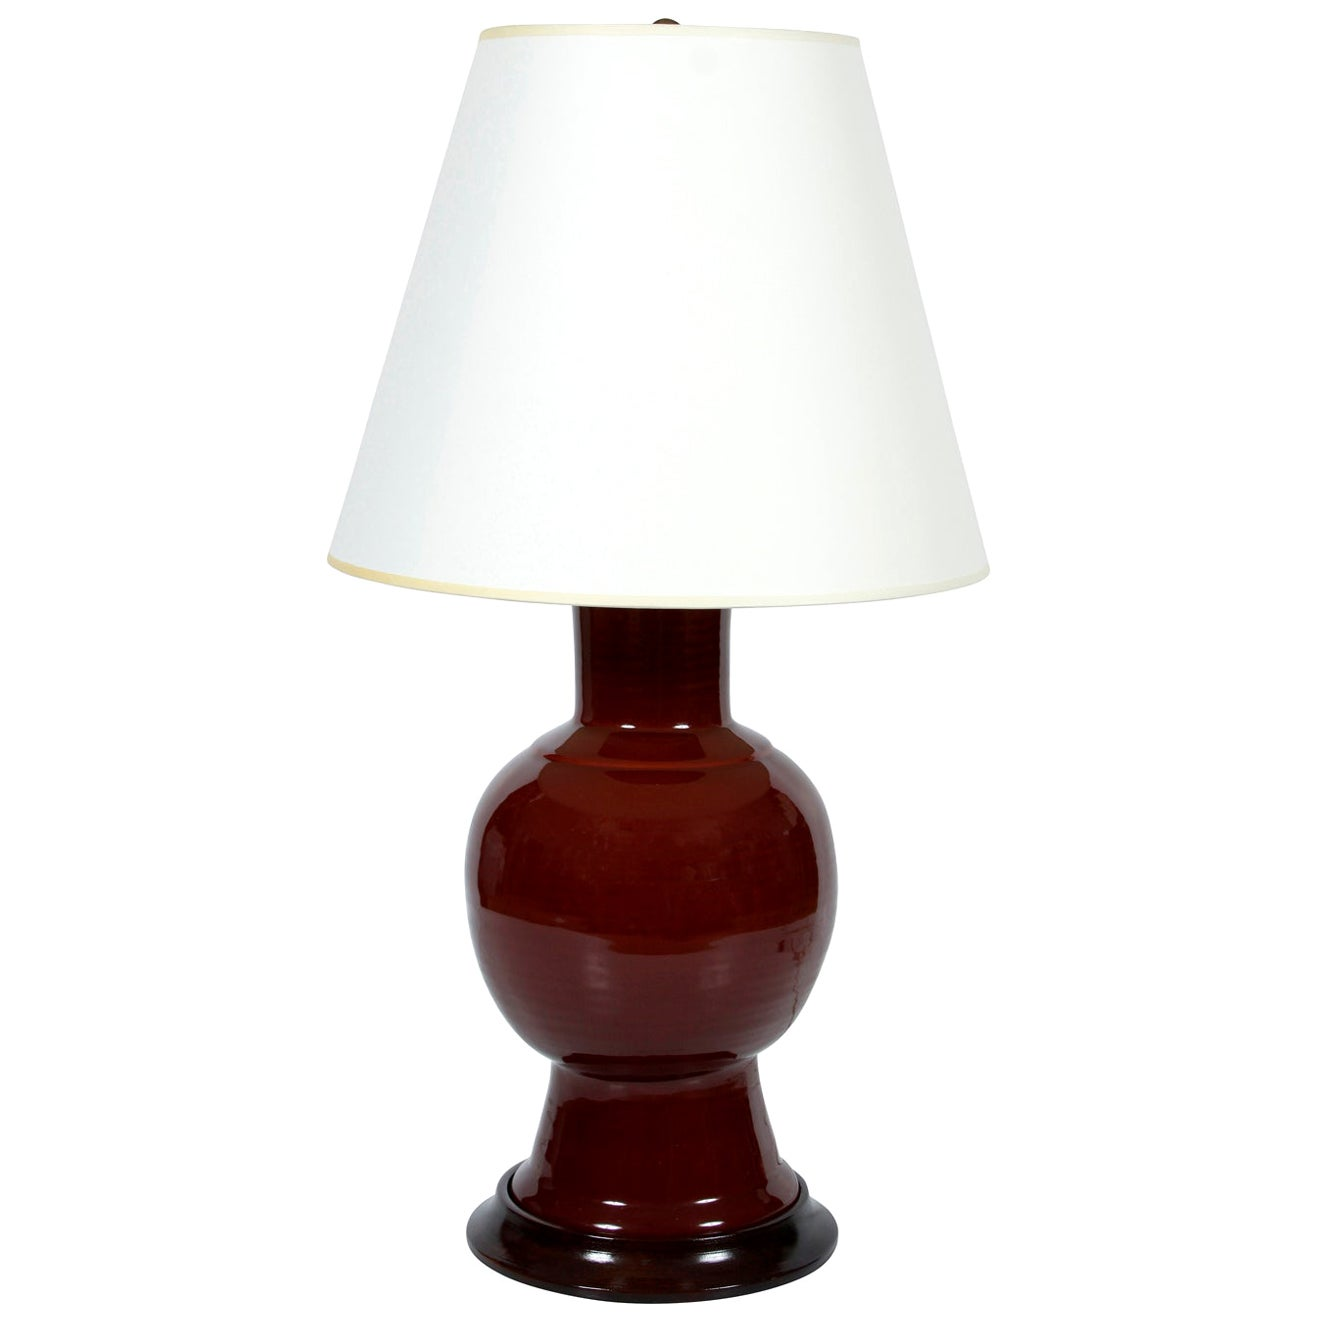 Christopher Spitzmiller Lamp with Wood Base